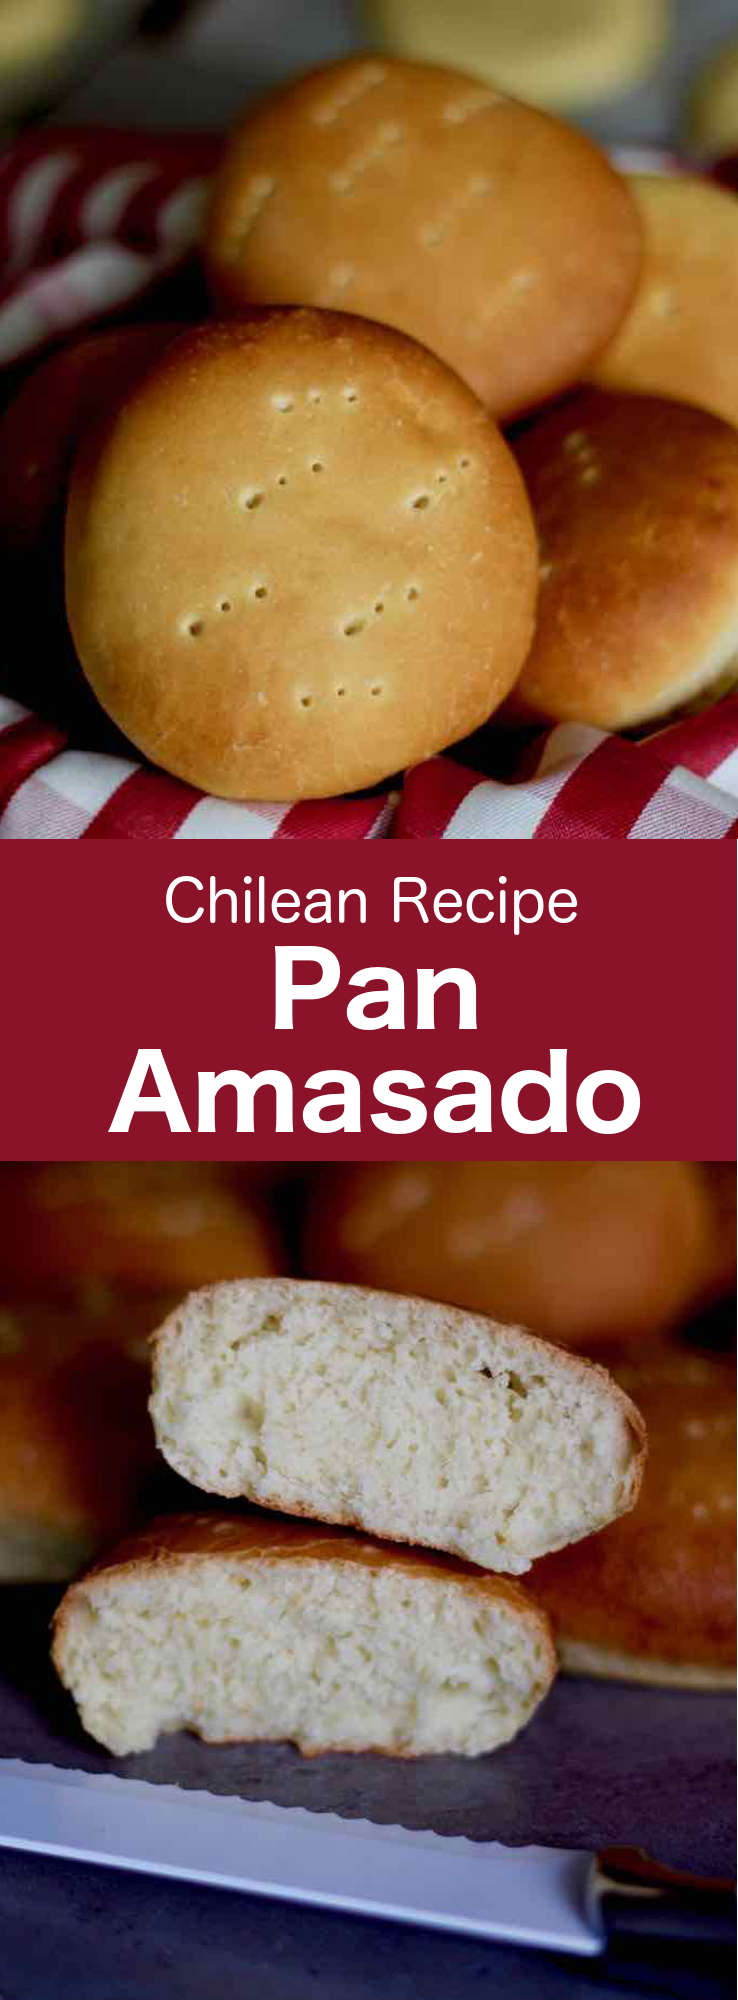 Pan amasado is one of the most traditional breads of Chile. This is a round and a little flat bread that is tasted with pebre or is used to make delicious sandwiches. #Chile #ChileanCuisine #ChileanRecipe #ChileanFood #WorldCuisine #196flavors